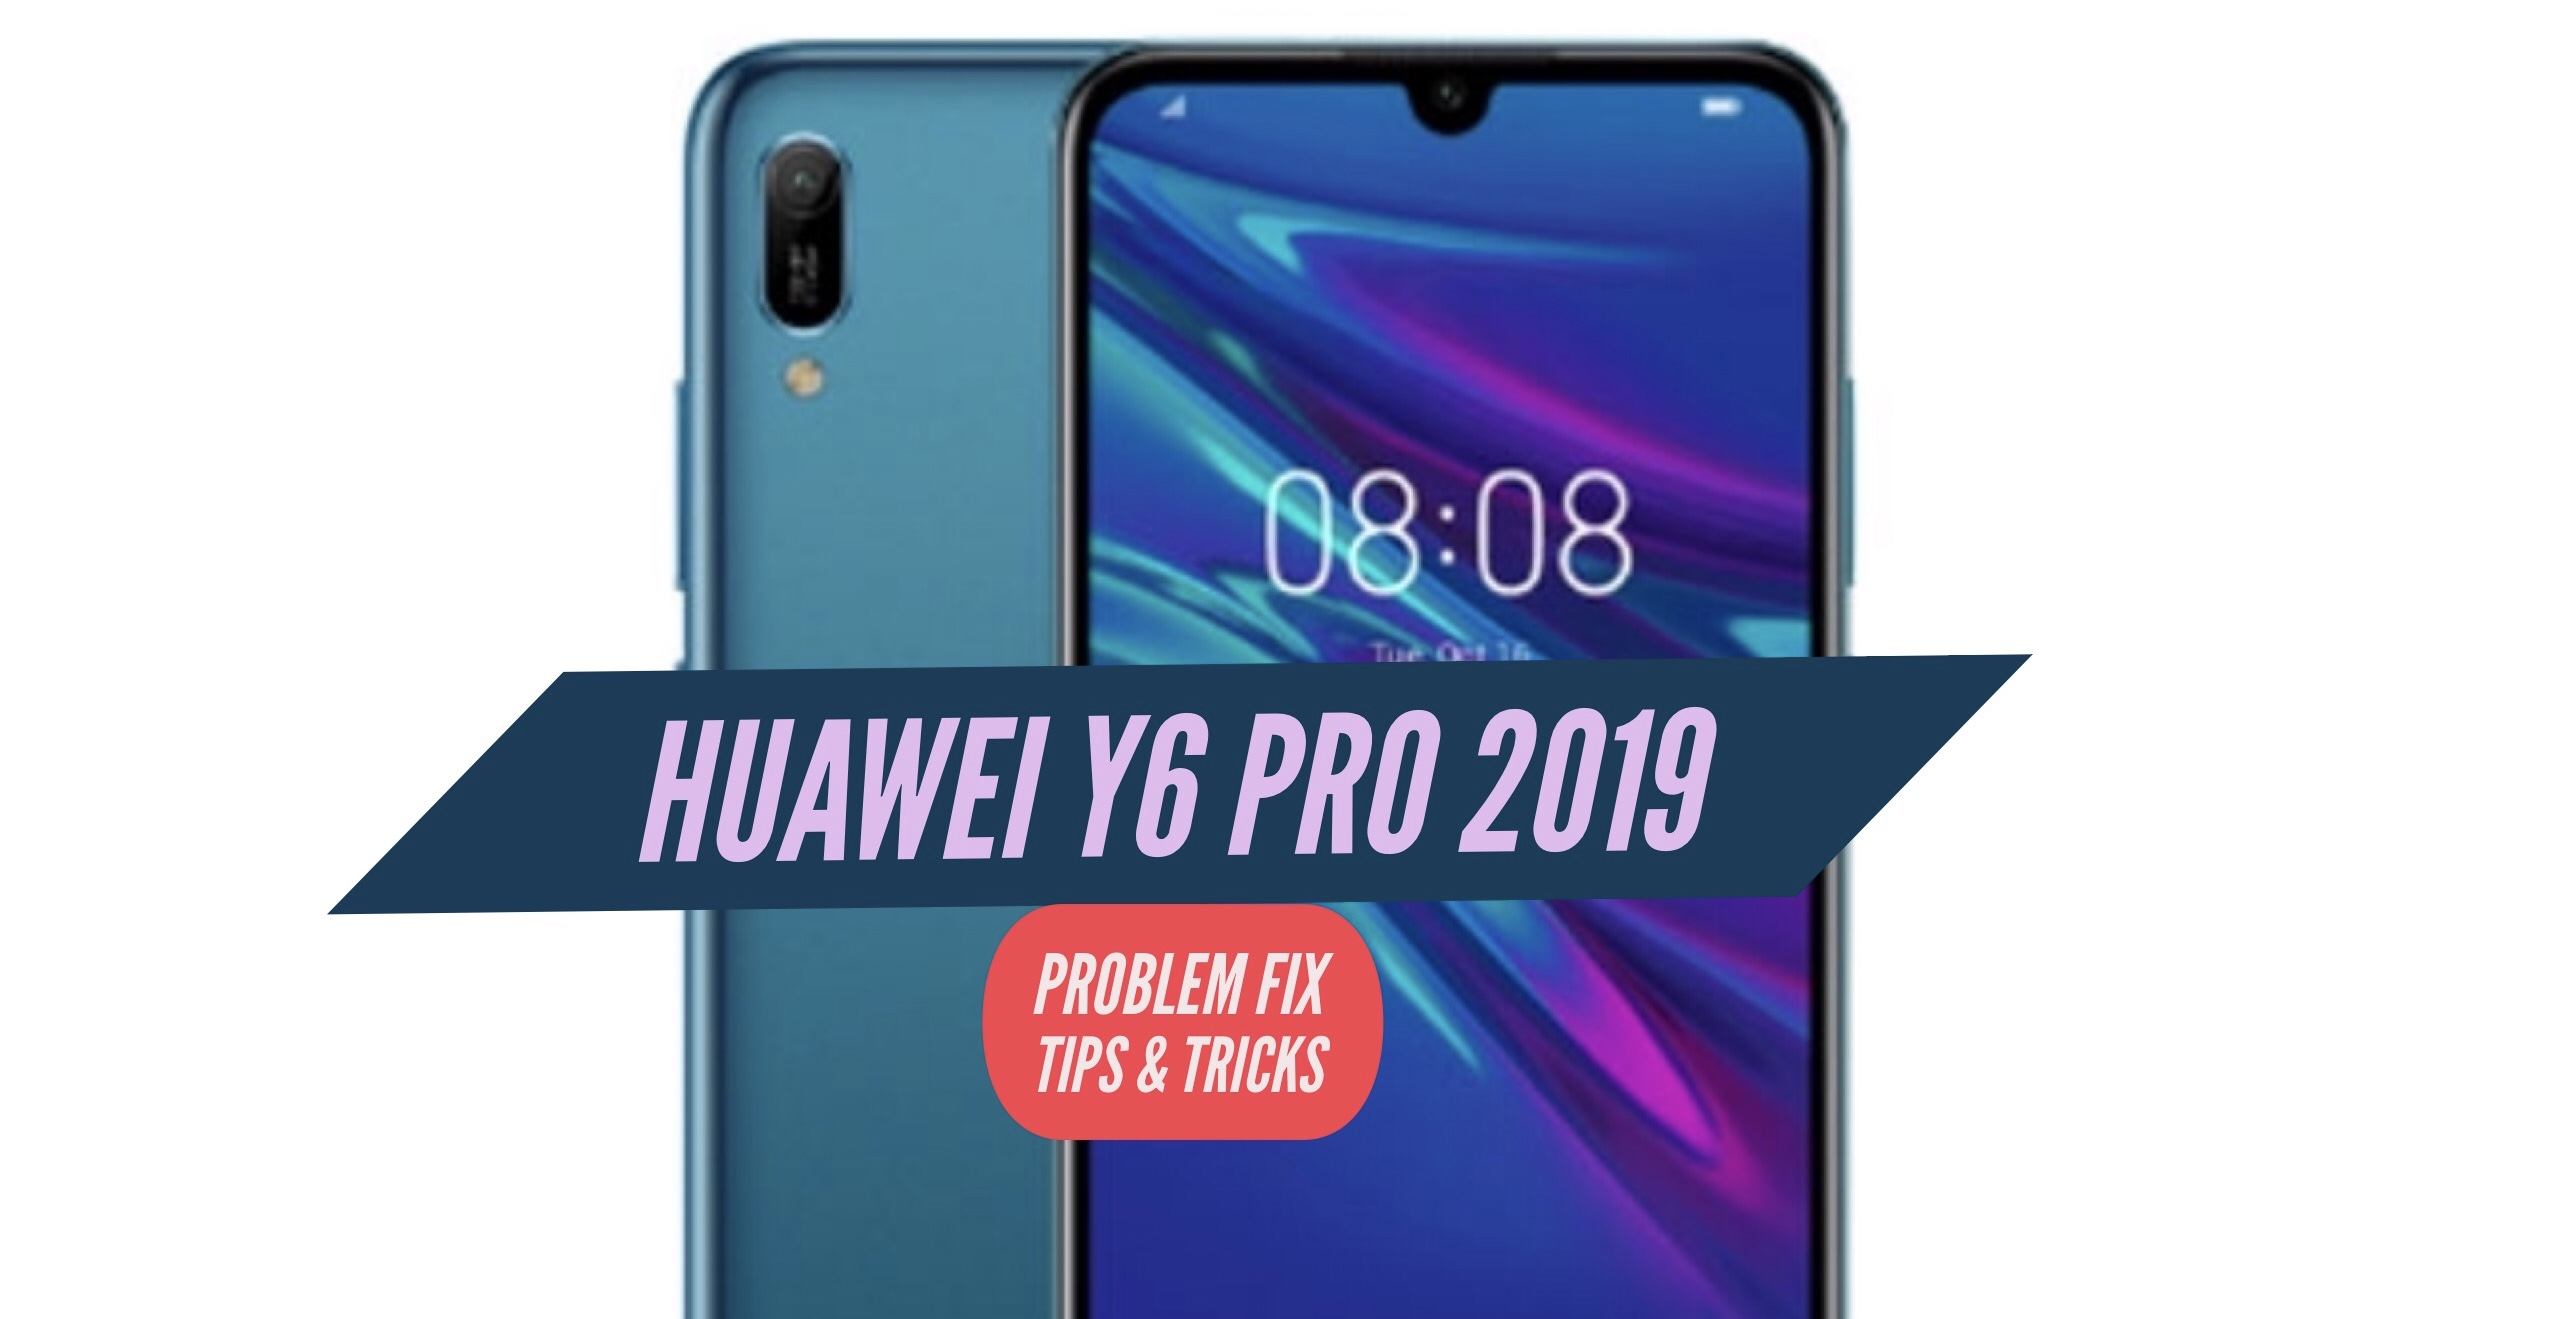 Huawei Y6 Pro 2019 Most Common Problems & Issues + Solution Fix